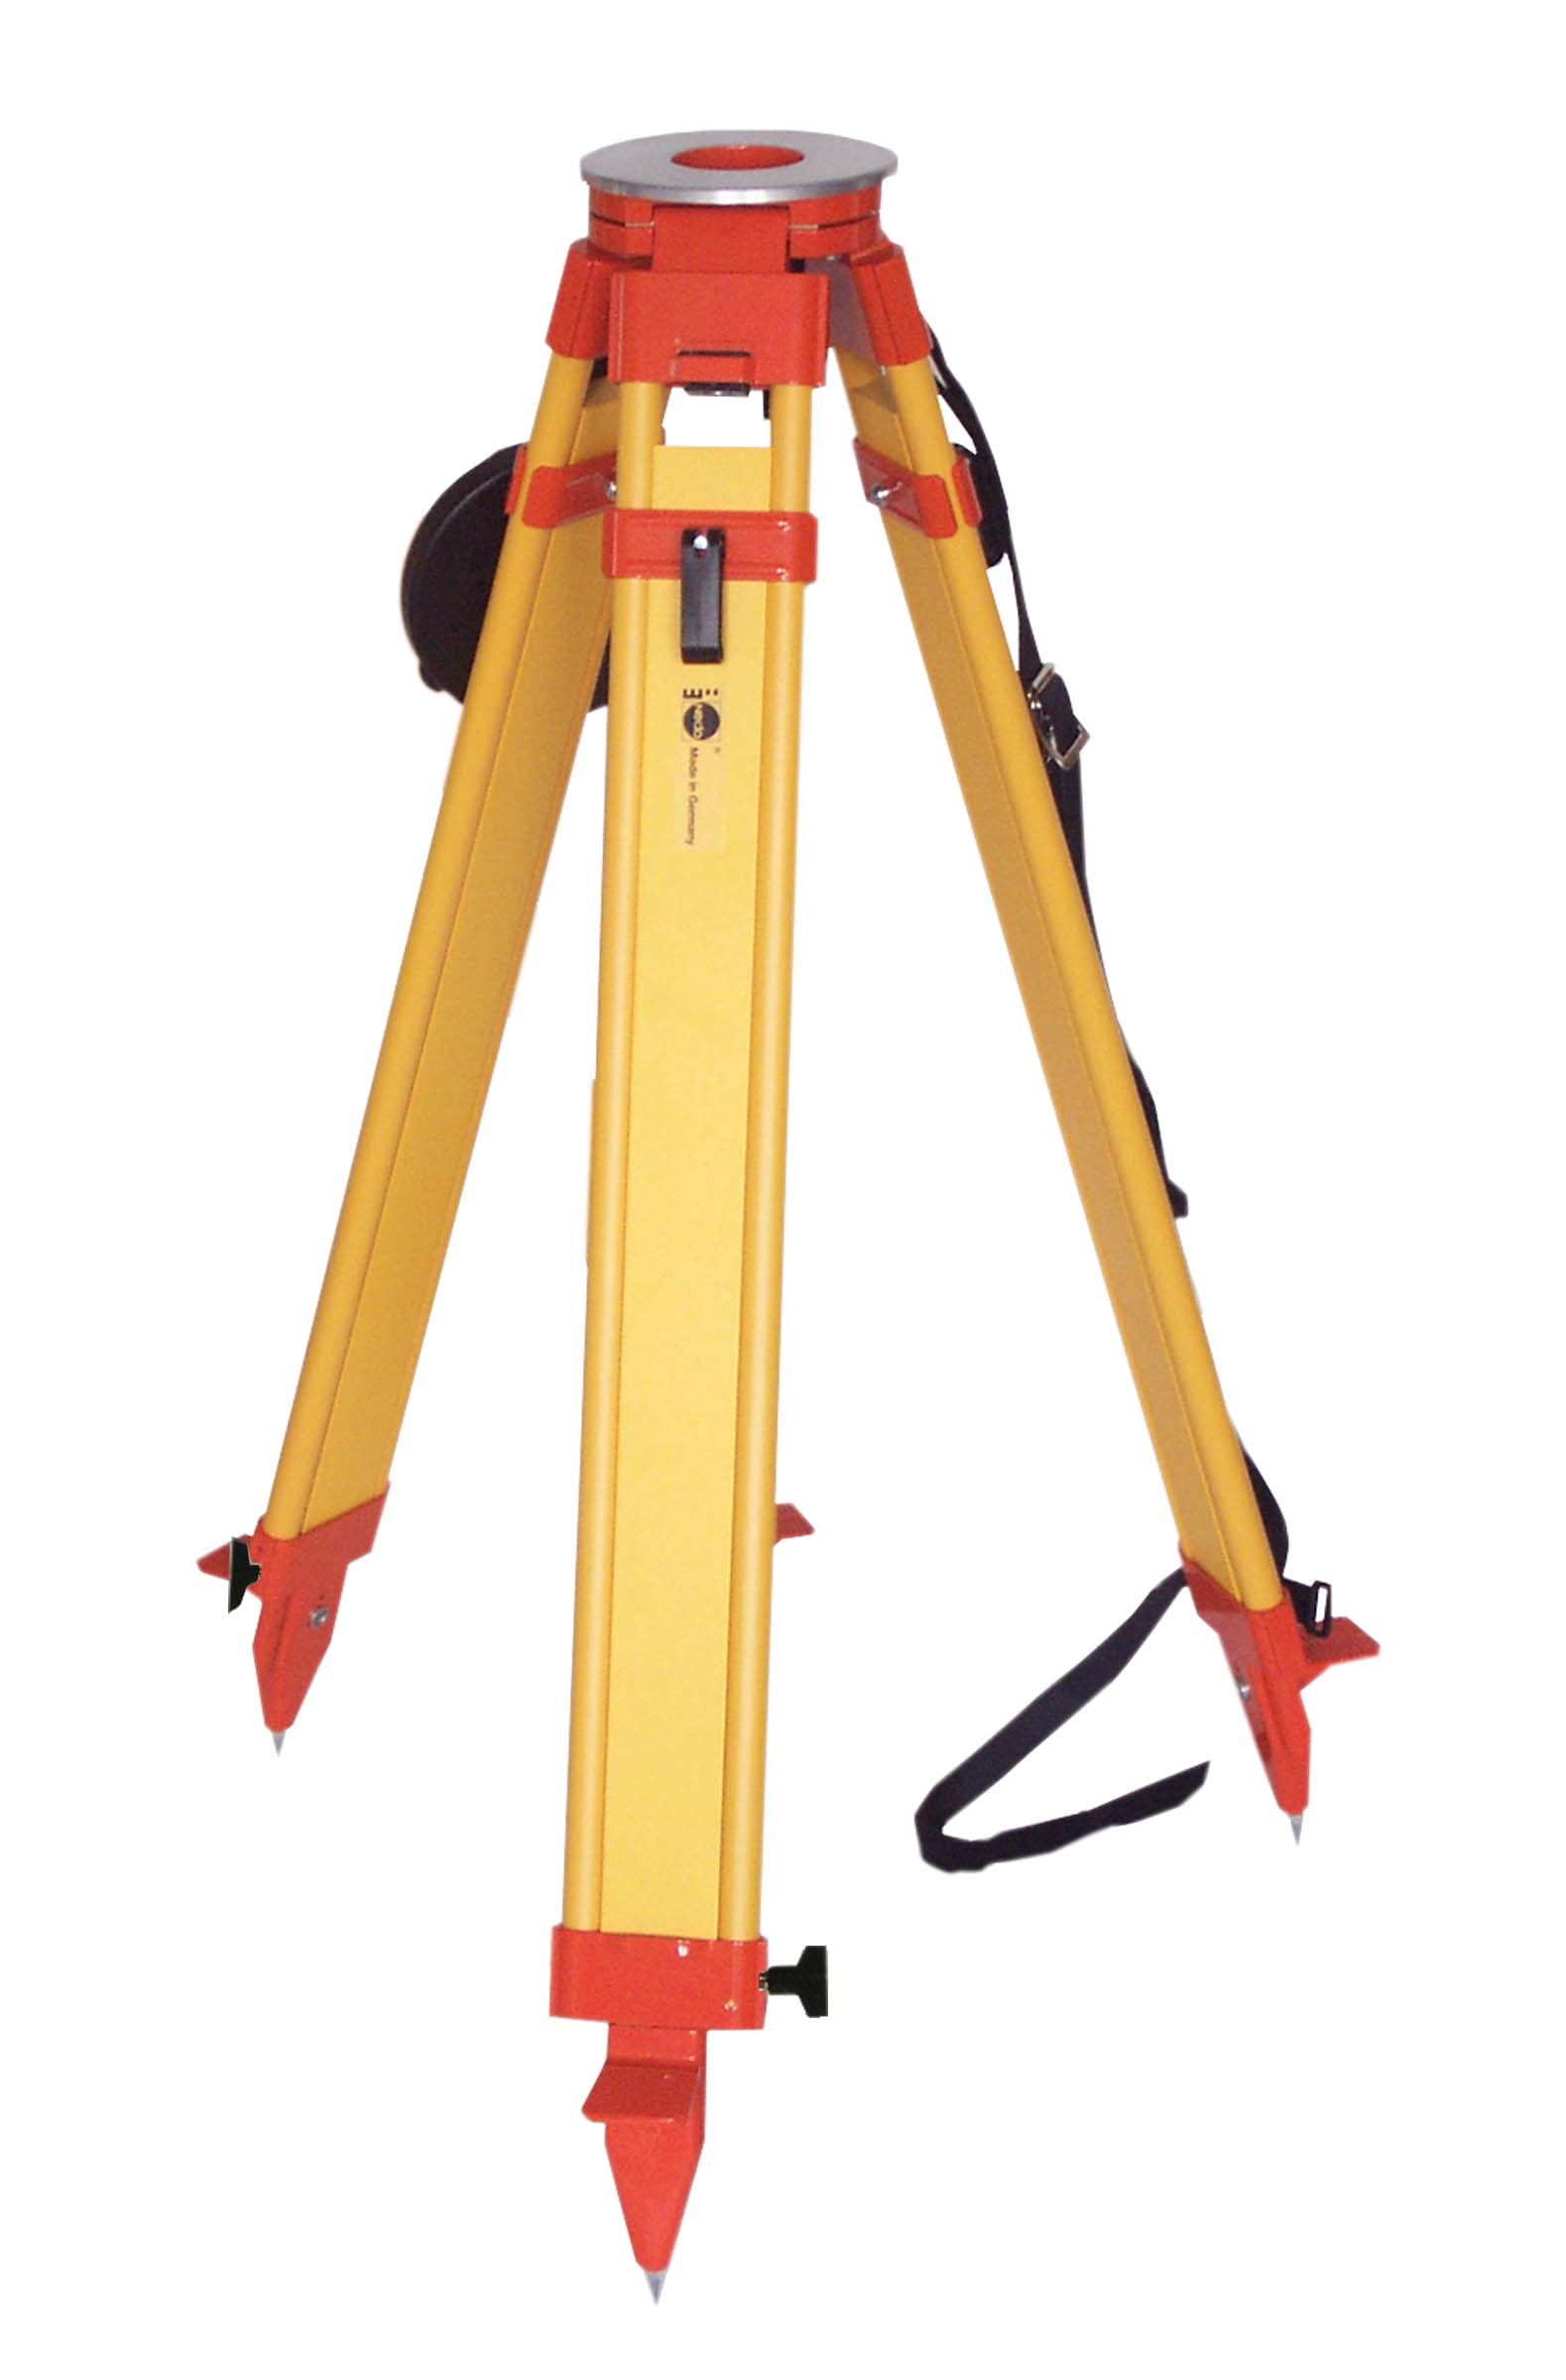 NEDO Surveyors Grade Wooden Tripod with Dual Clamps